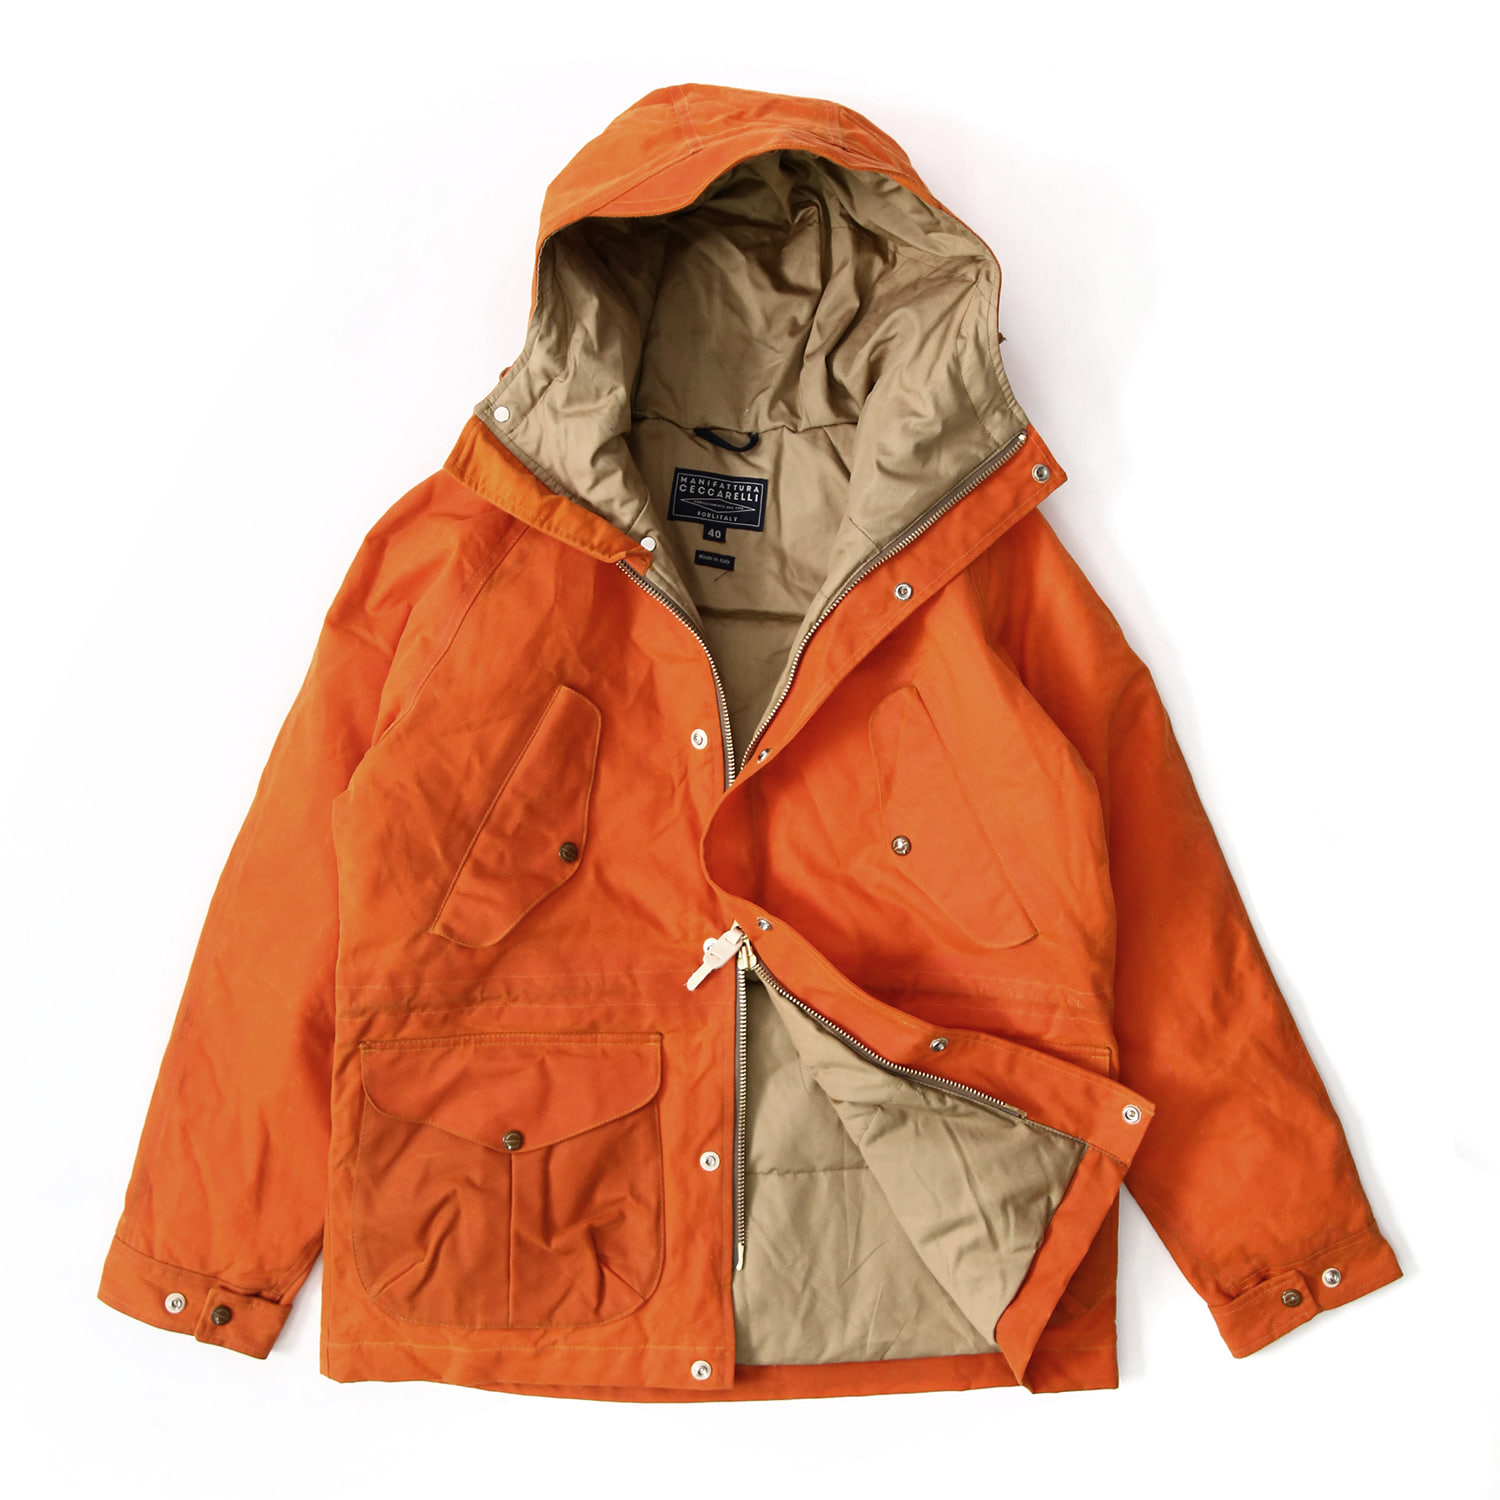 Fisherman Parka - Orange